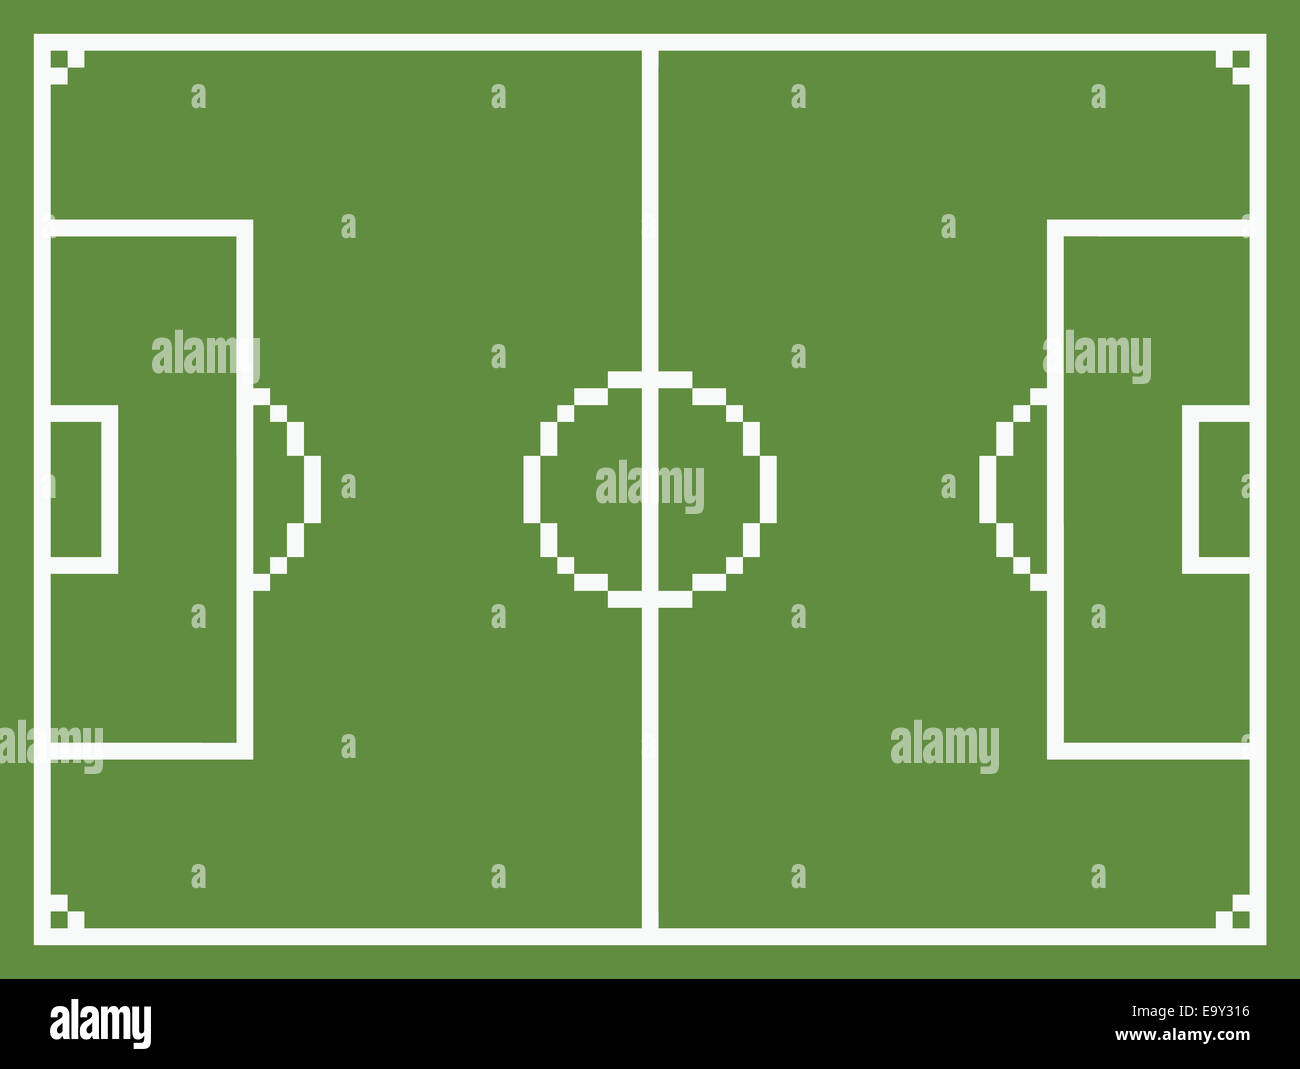 Pixel Art Style Football Sport Field Soccer Playground Green Vintage Game